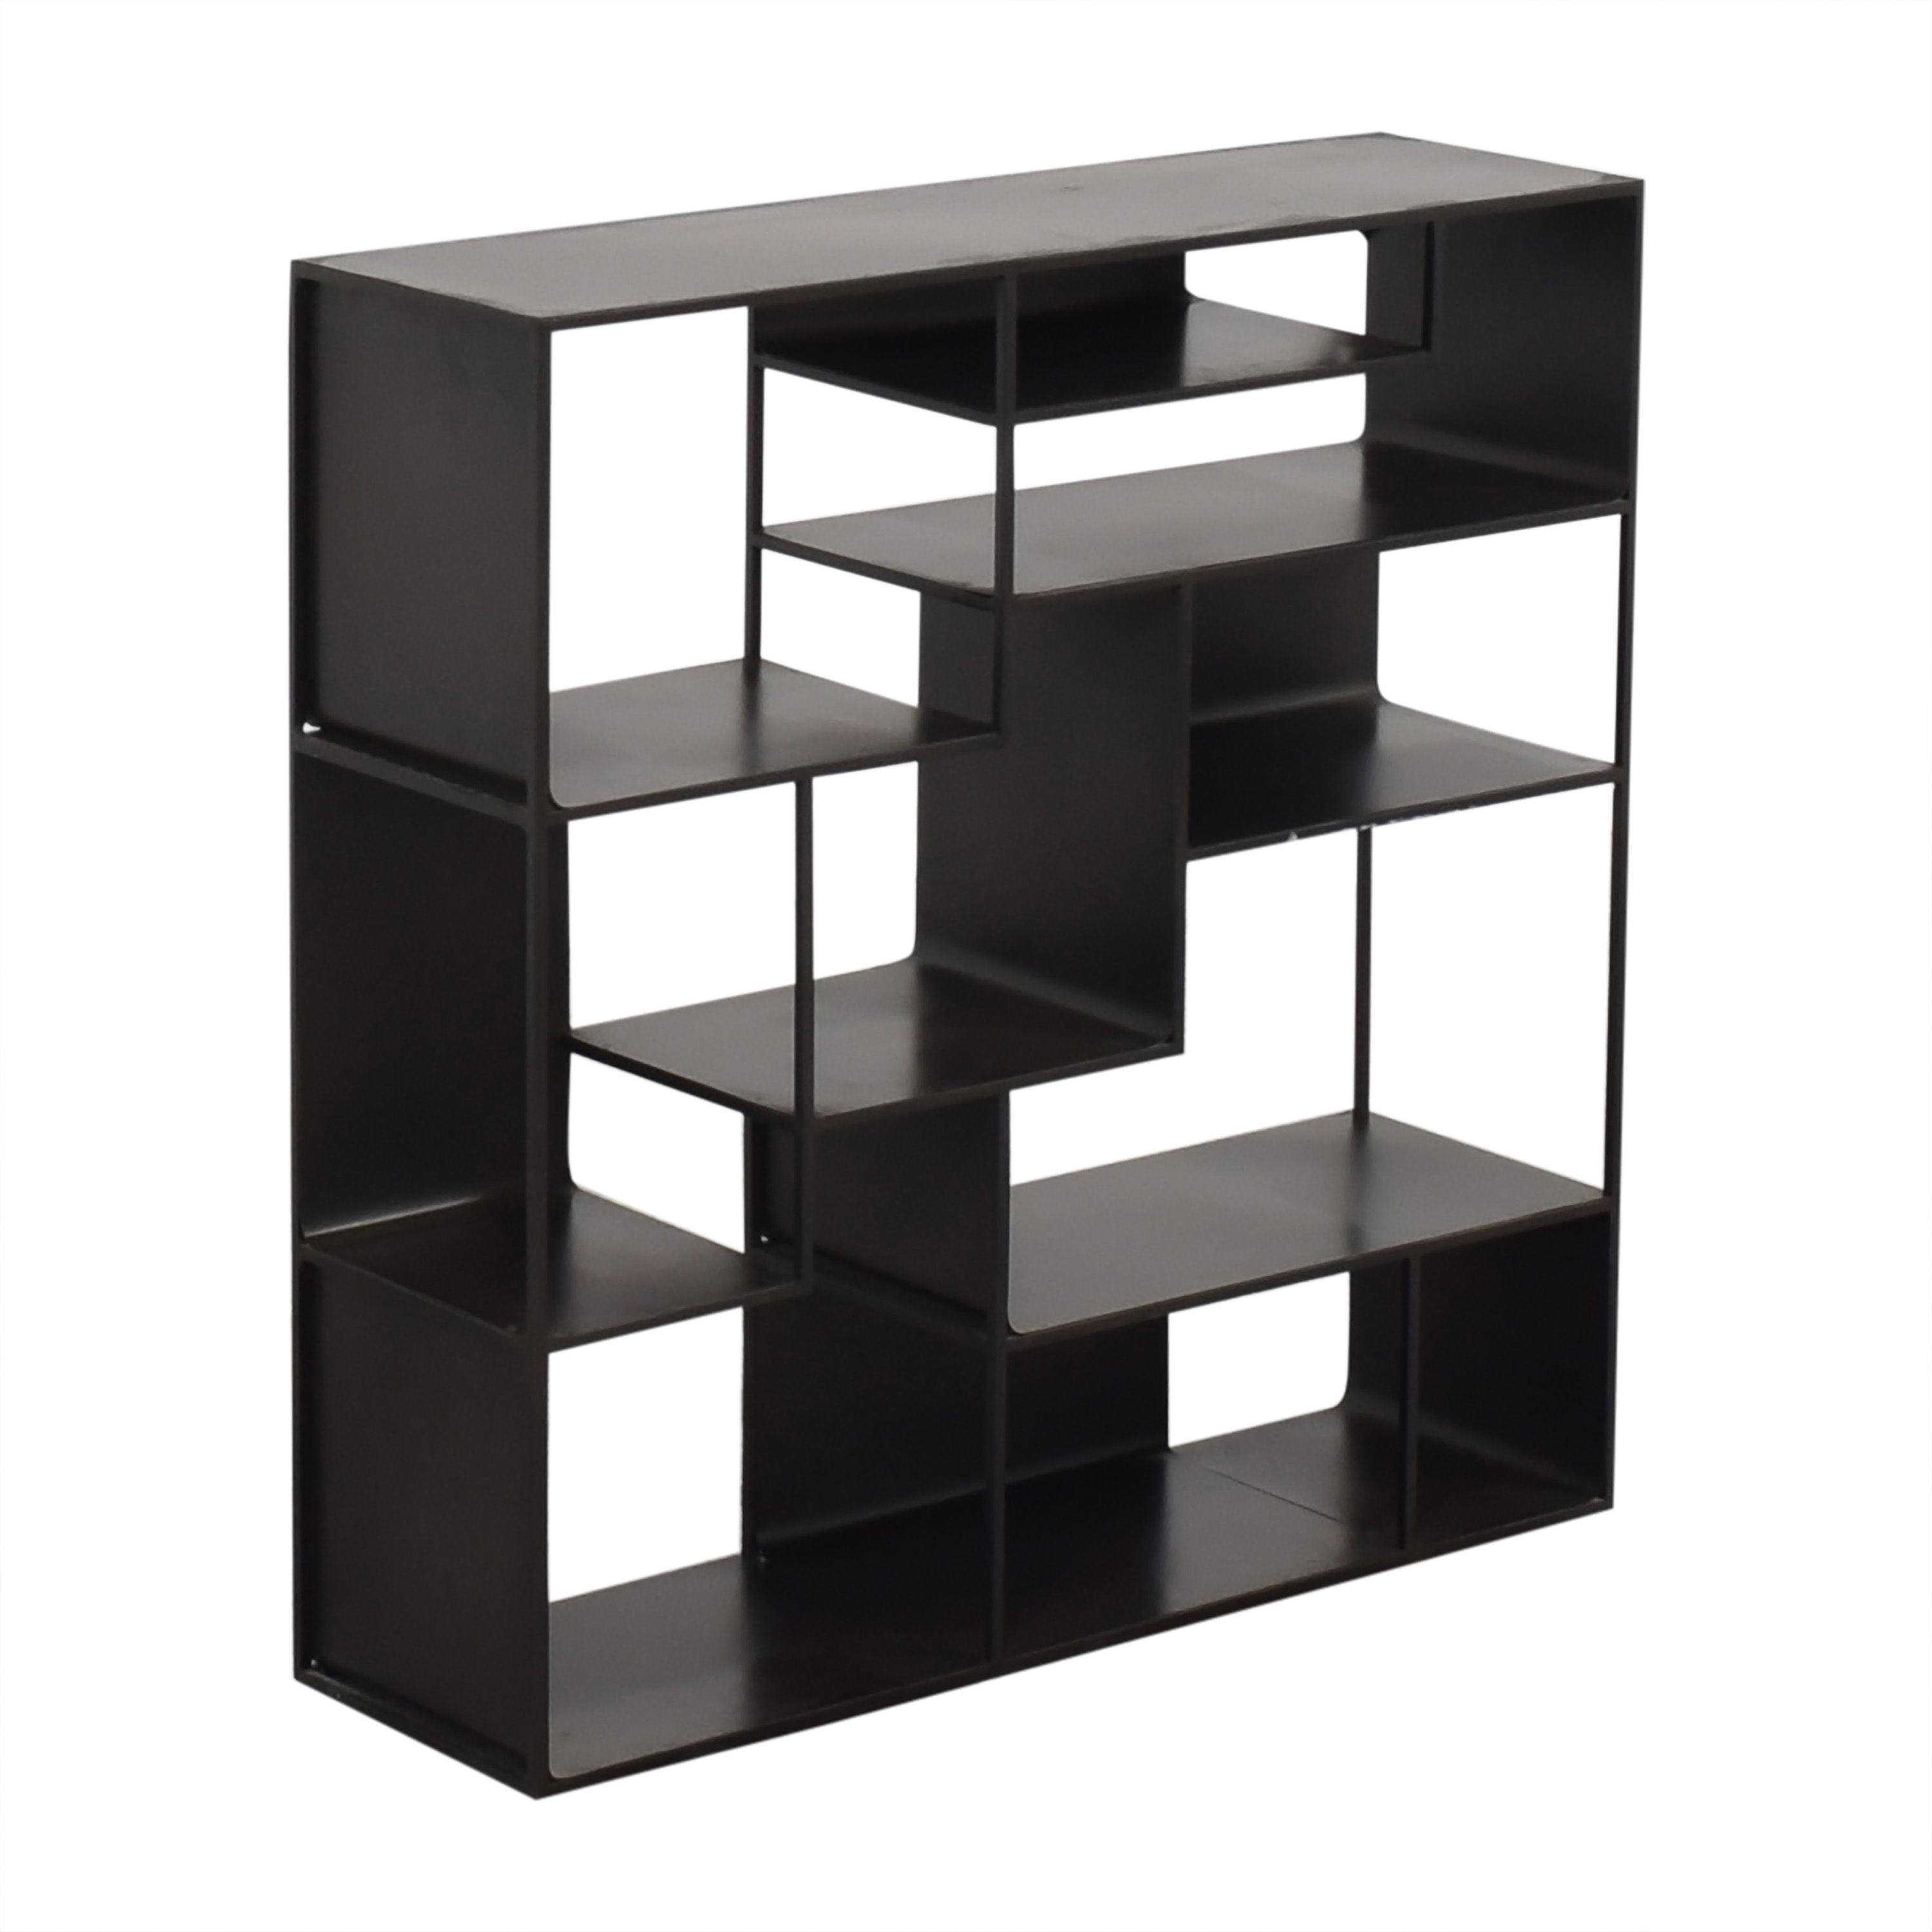 CB2 CB2 Wall Library Bookcases & Shelving